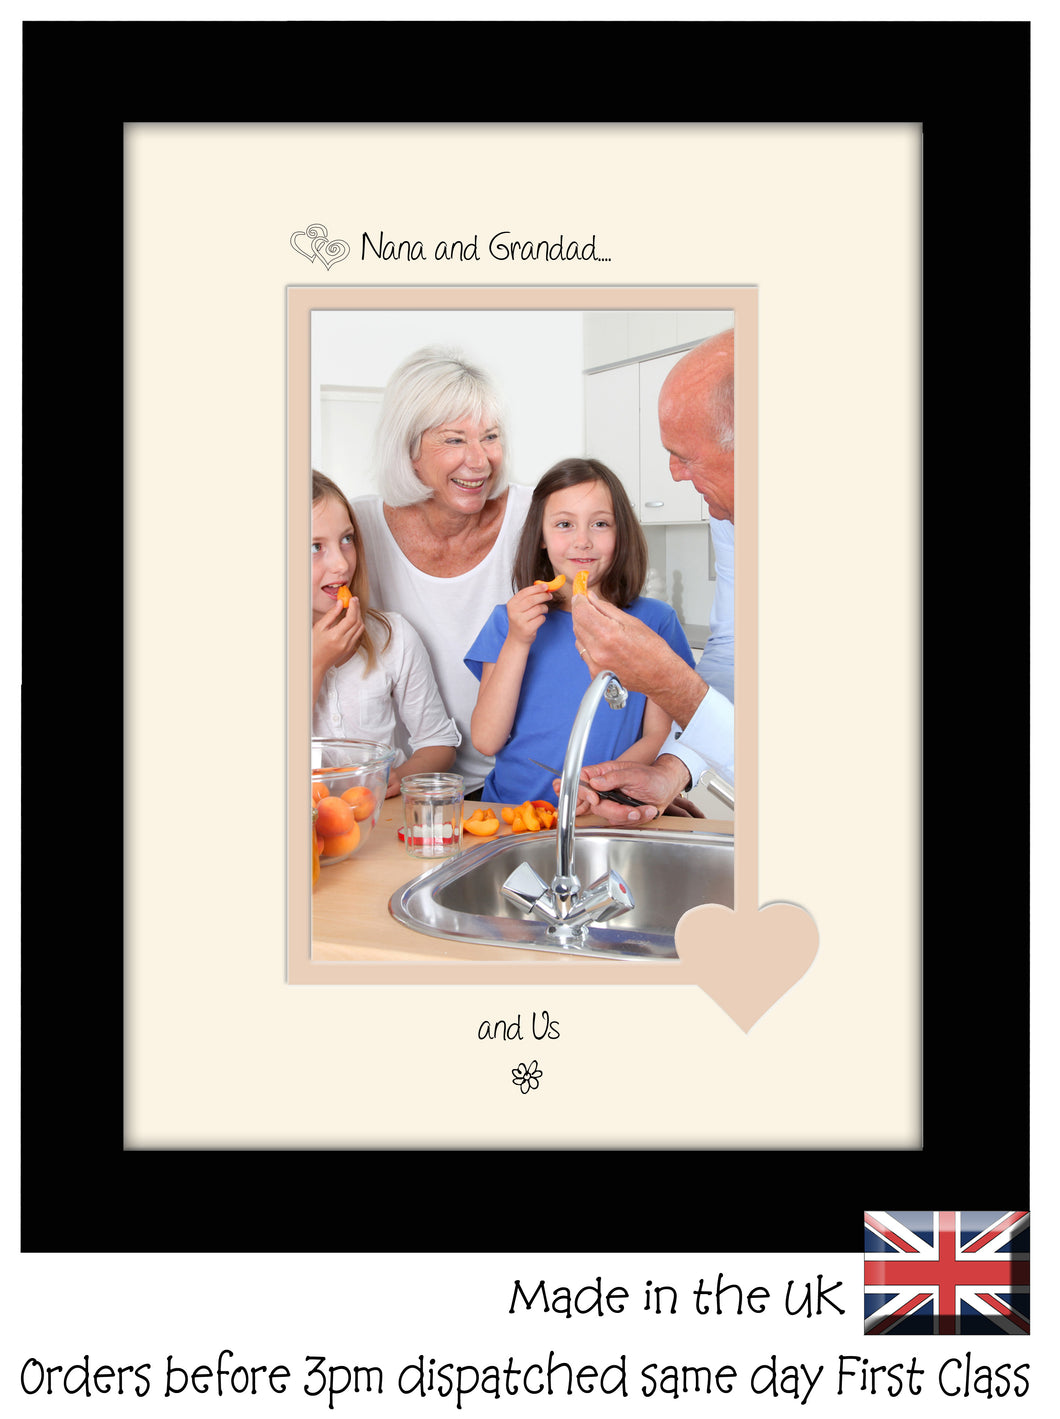 Nana & Grandad Photo Frame - Nana and Grandad… ...and us! Portrait photo frame 6